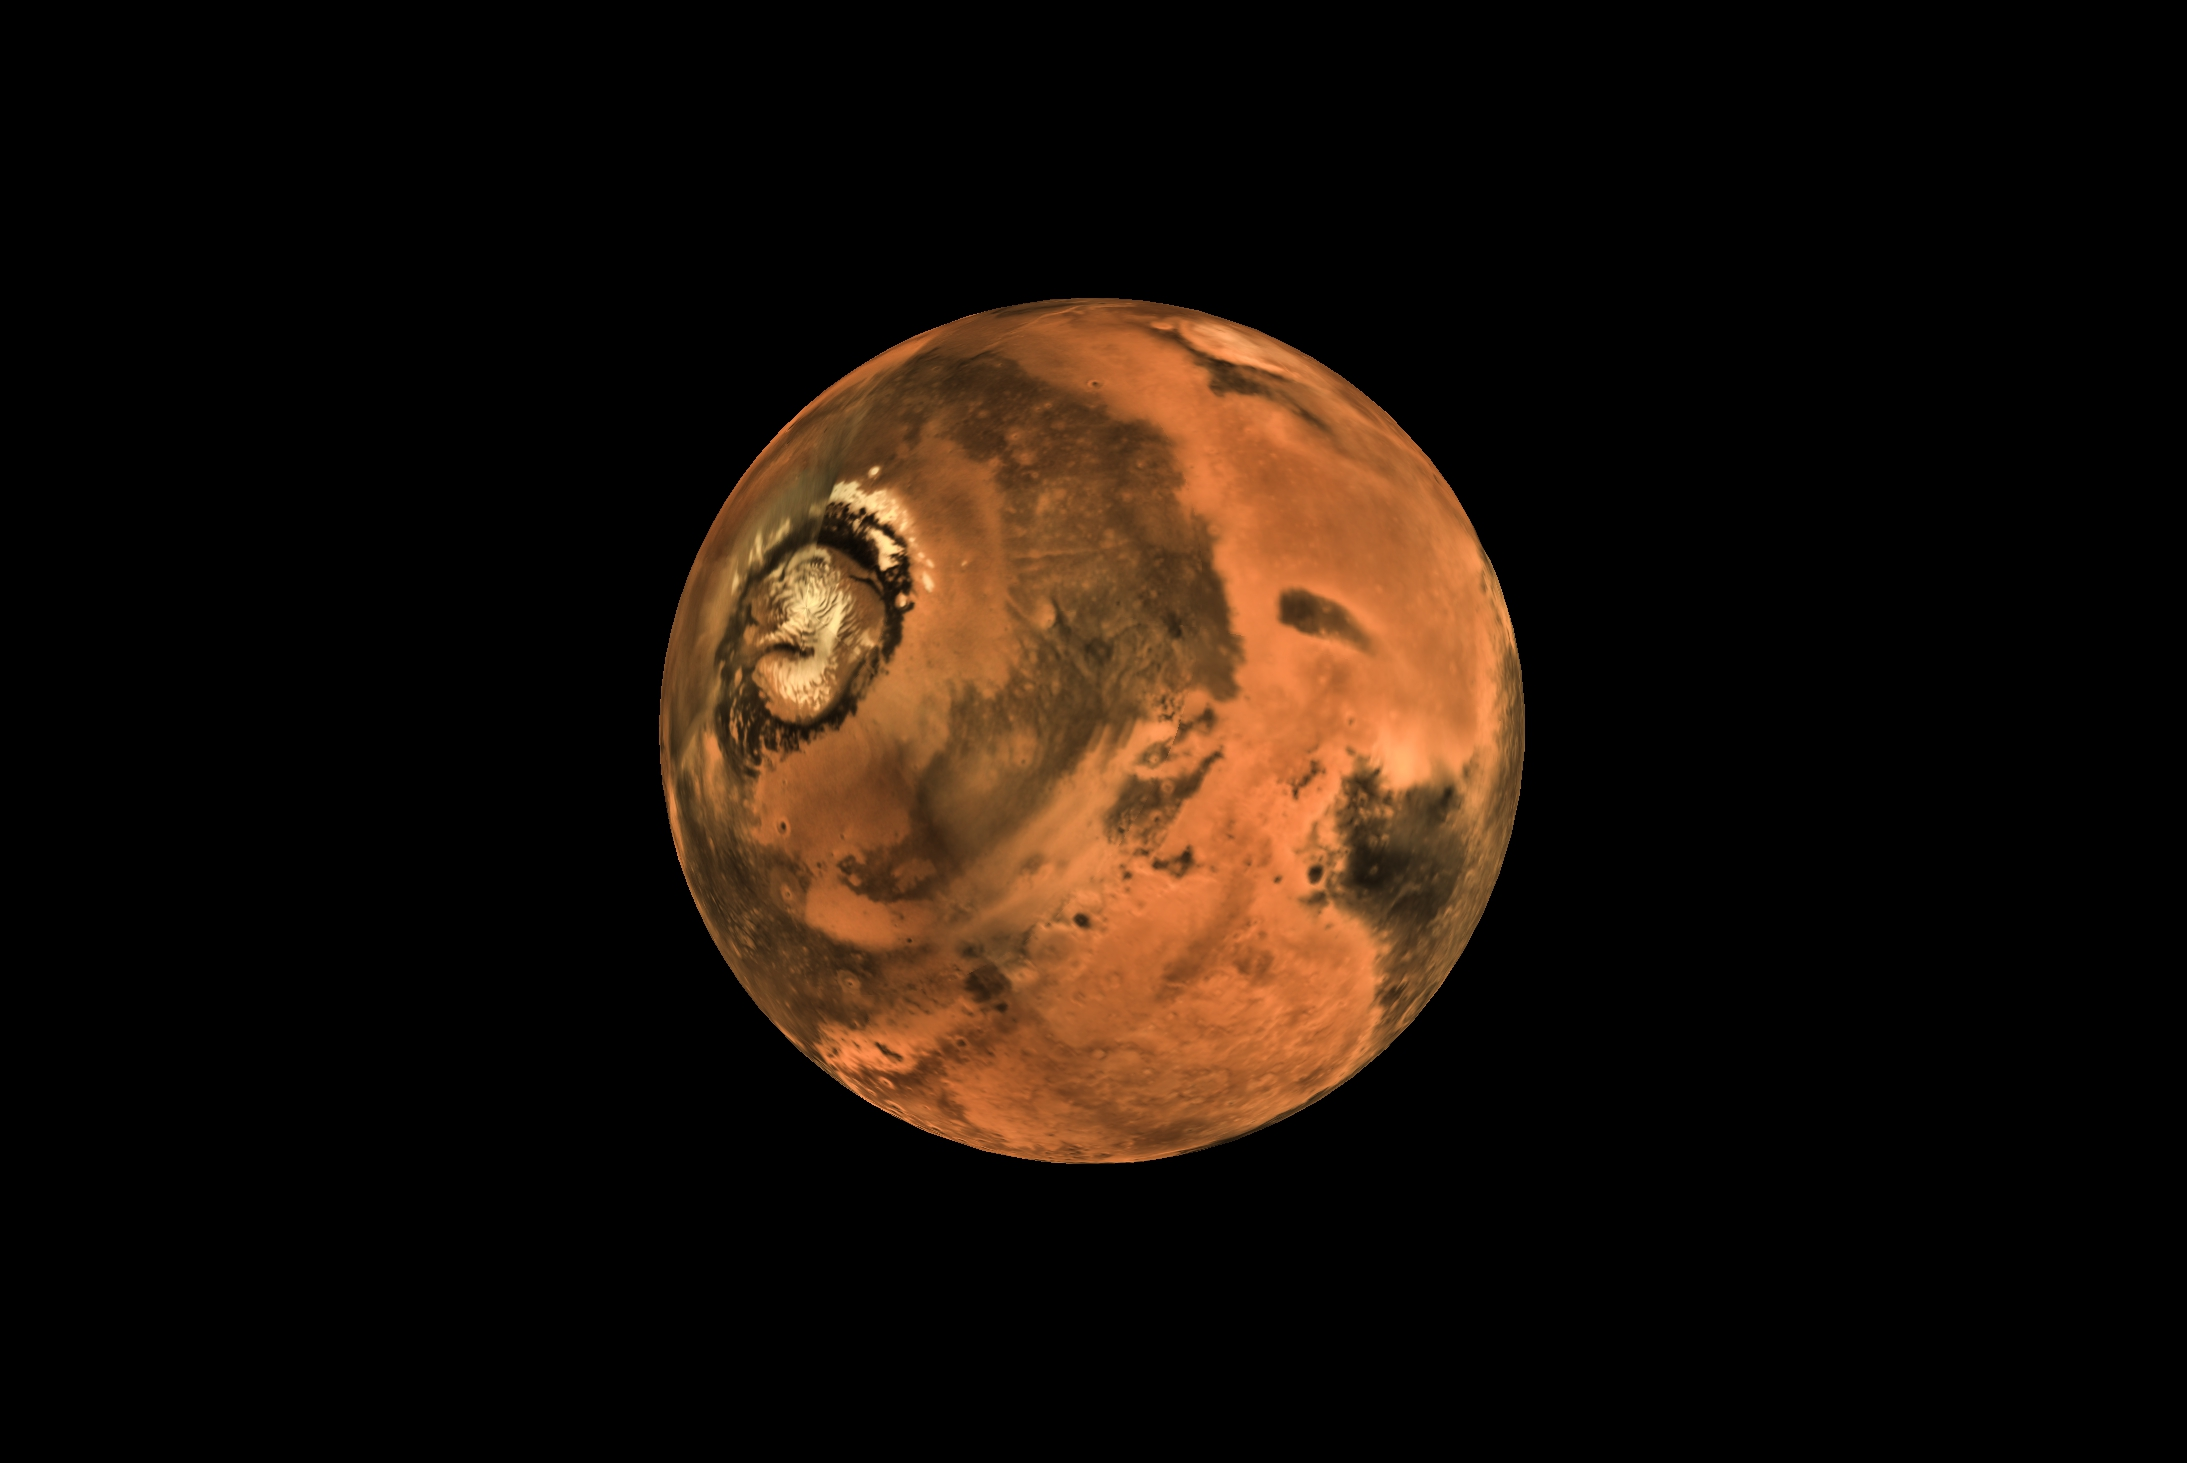 mission mars The launch date is still a decade away but preparations are underway for the first human expedition to mars here we explain about the mission, mars spacecrafts and selecting volunteers to .